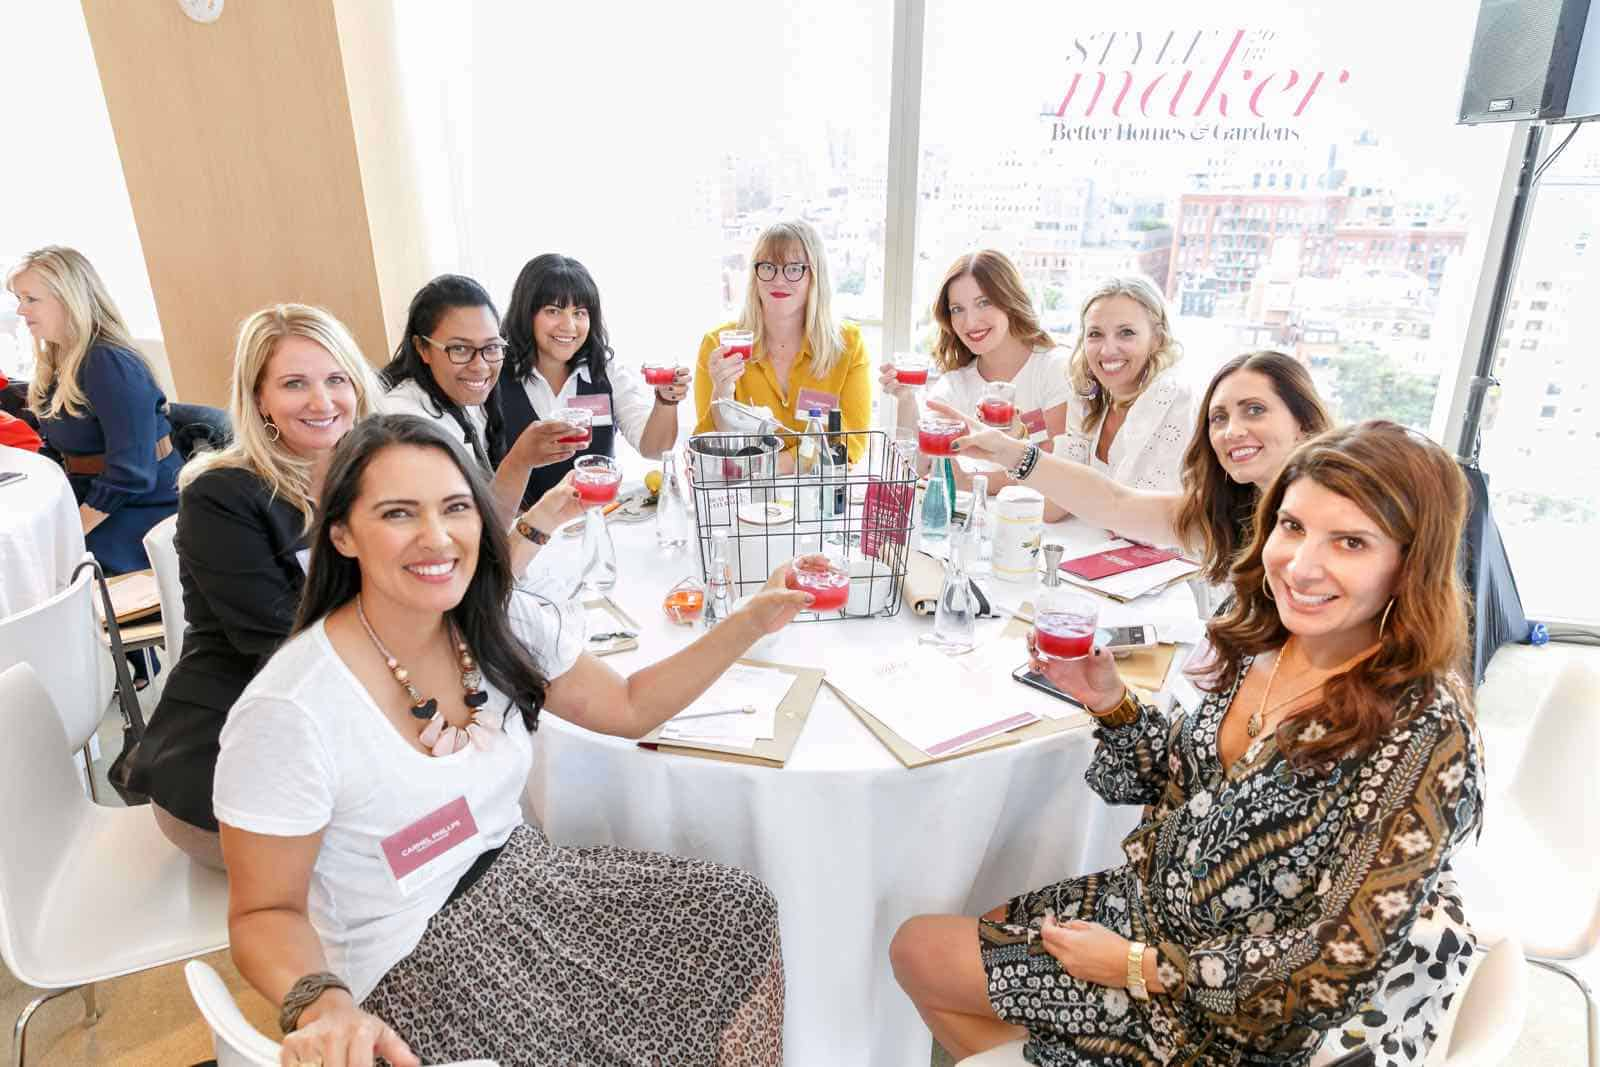 cocktails with BHG Stylemakers